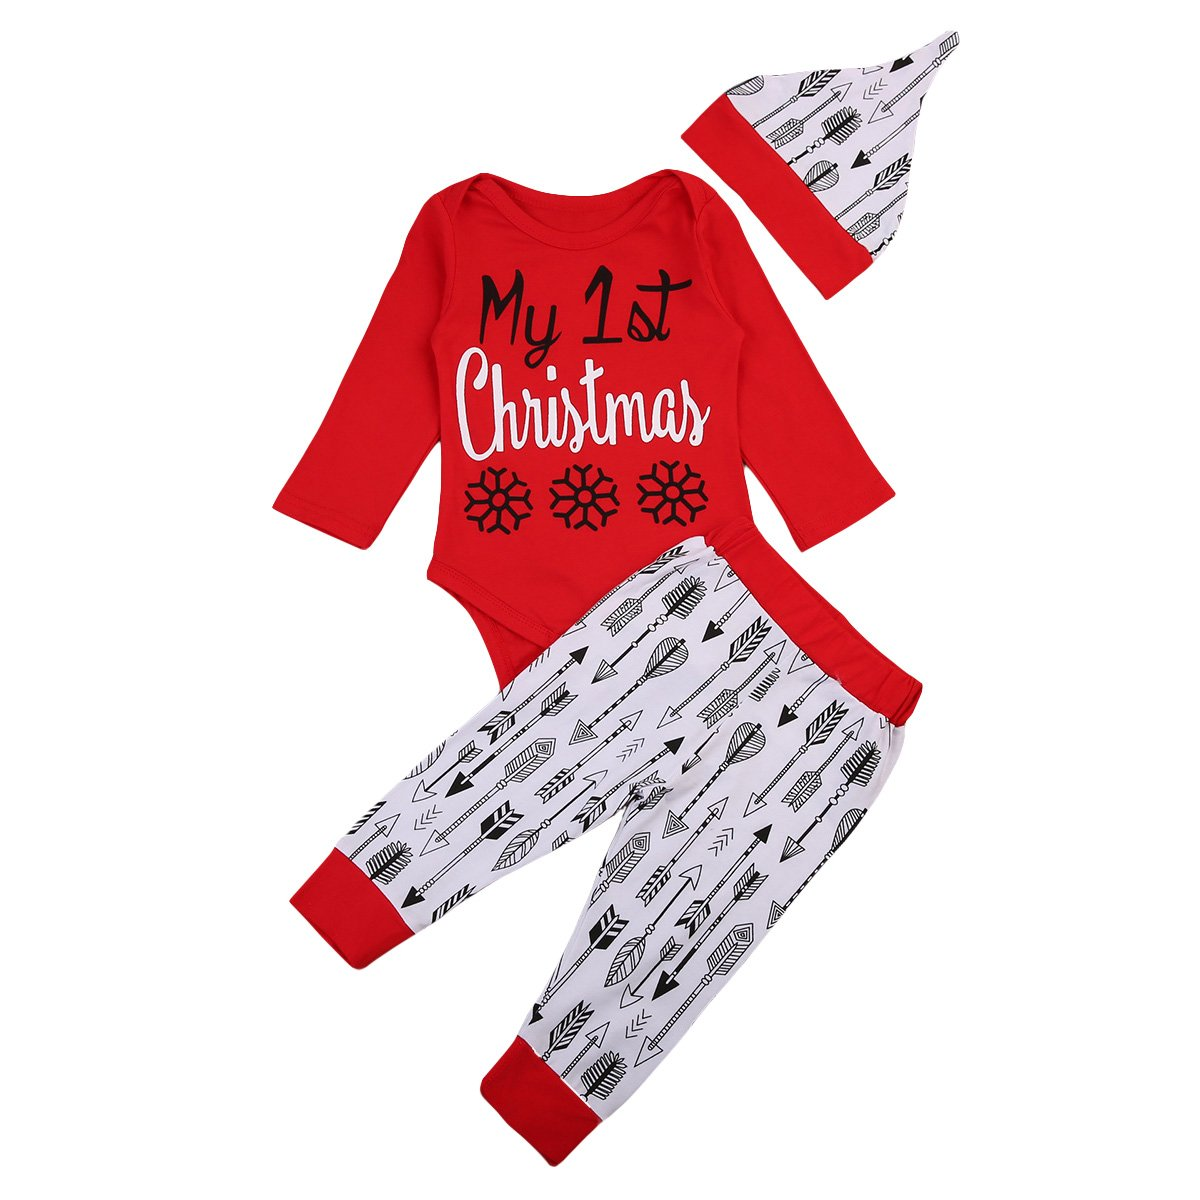 fae92c9c3c6 Top1  Baby Girls Boys Christmas Clothes Set My 1st Christmas Romper Arrow  Printed Pants with Hat 3pcs Suit Winter Outfits. Wholesale ...